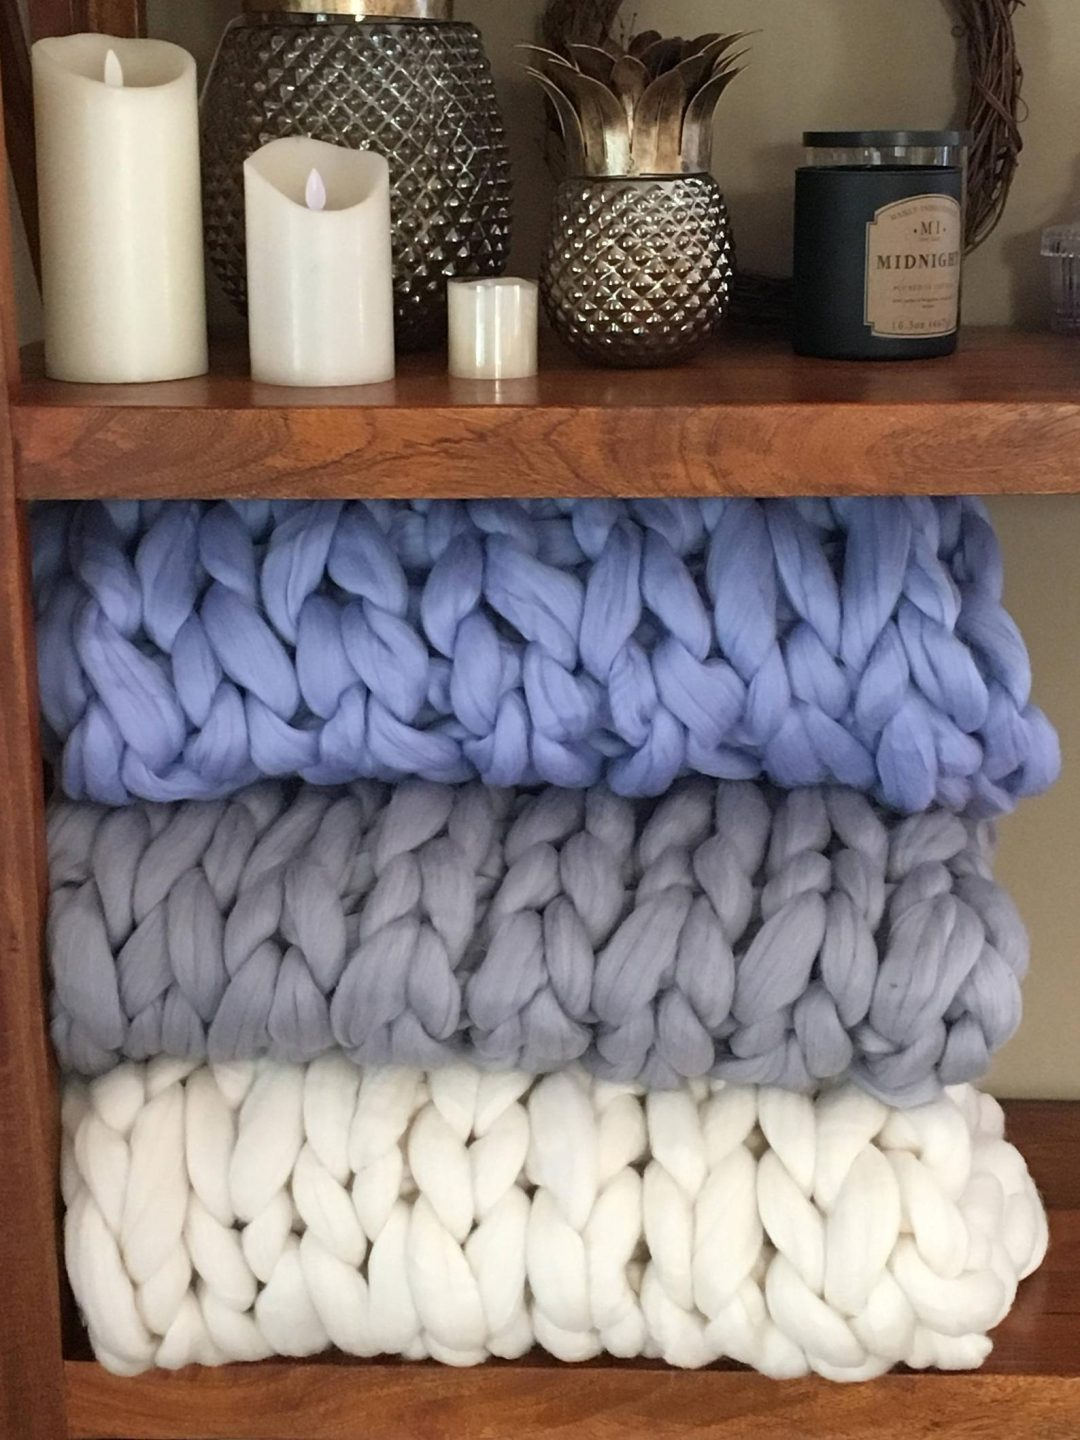 The best chunky knit blanket - white, grey and blue chunky knit throw